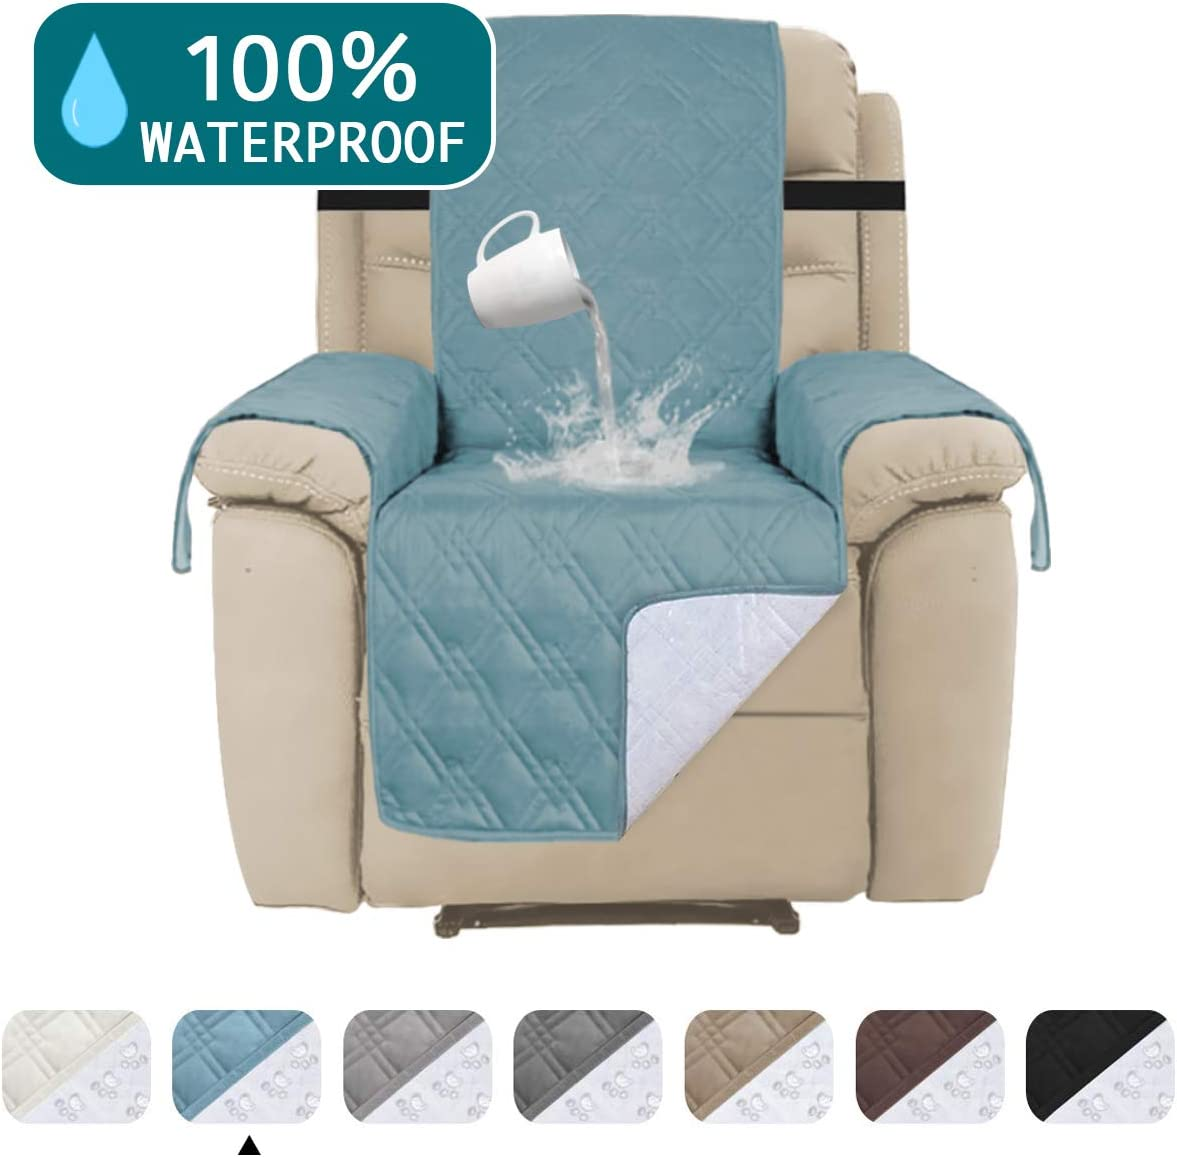 """Turquoize Waterproof Couch Cover for Recliner Chair Cover for Leather Furniture Protector Cover Non Slip Backing Furniture Cover Protect from Pets Sitting Area Up to 30"""", Oversized Recliner, Blue"""